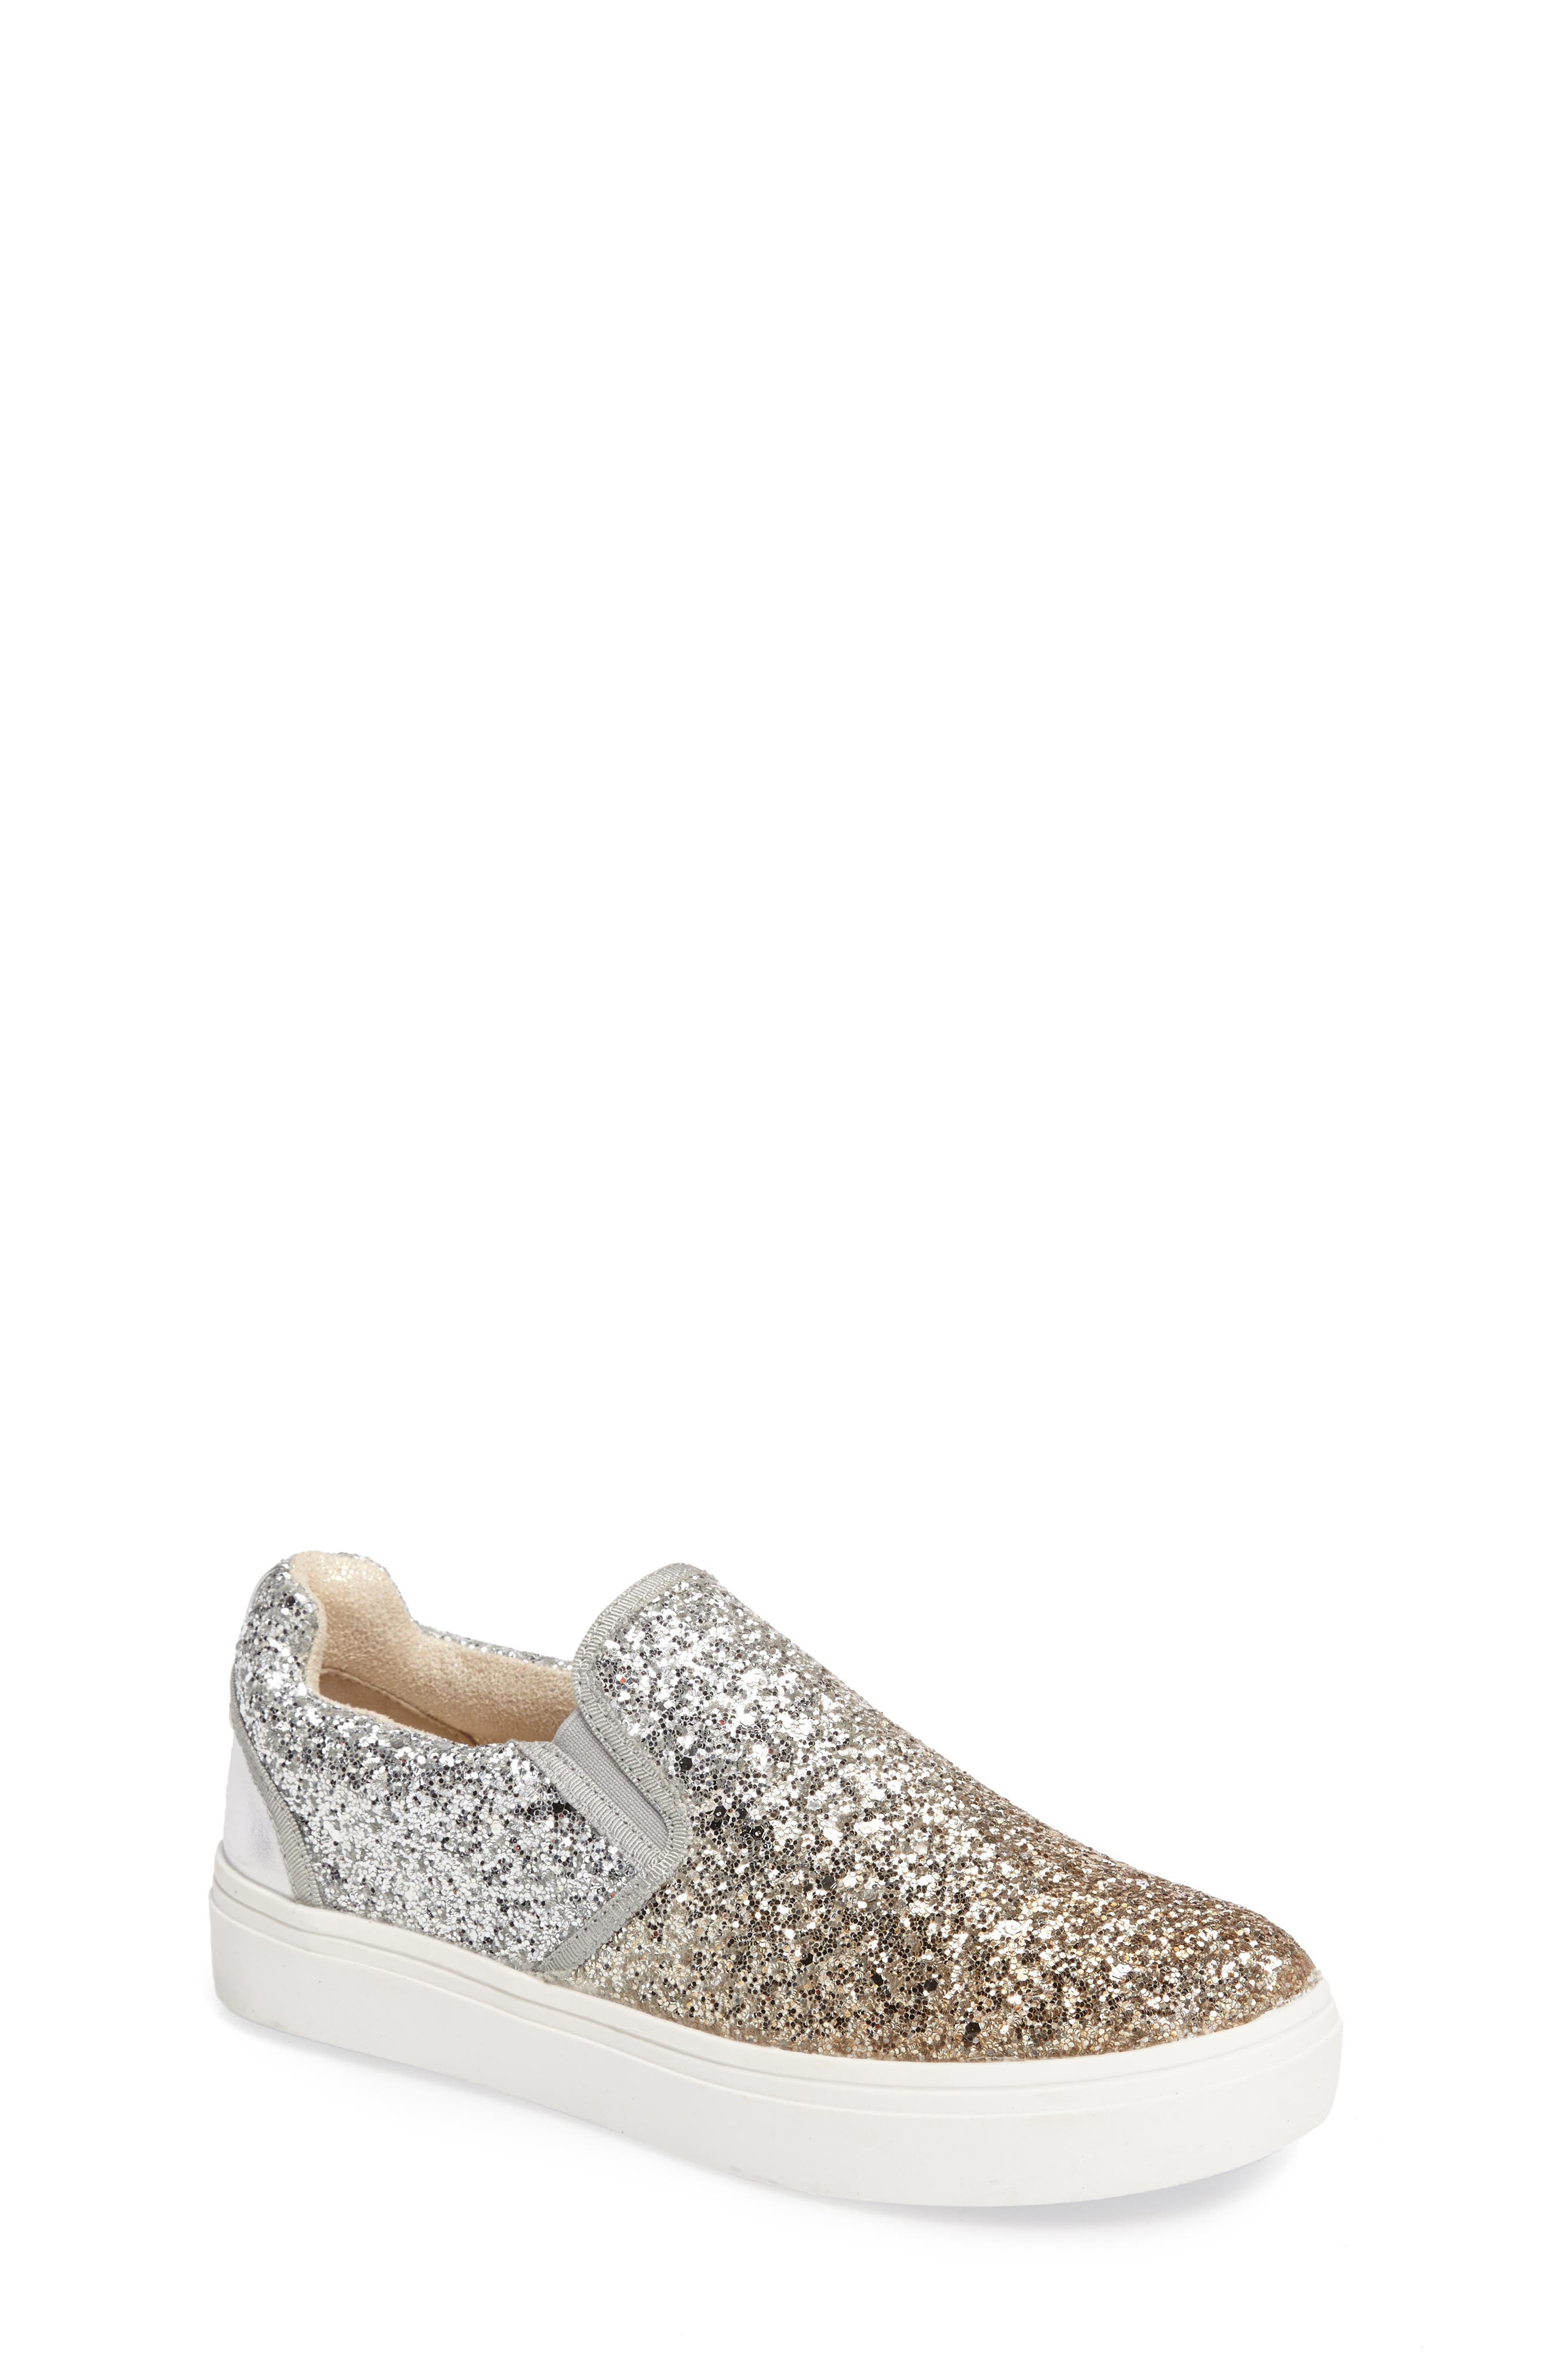 Double Marcia Glitter Platform Sneaker,                             Main thumbnail 1, color,                             Silver/ Gold